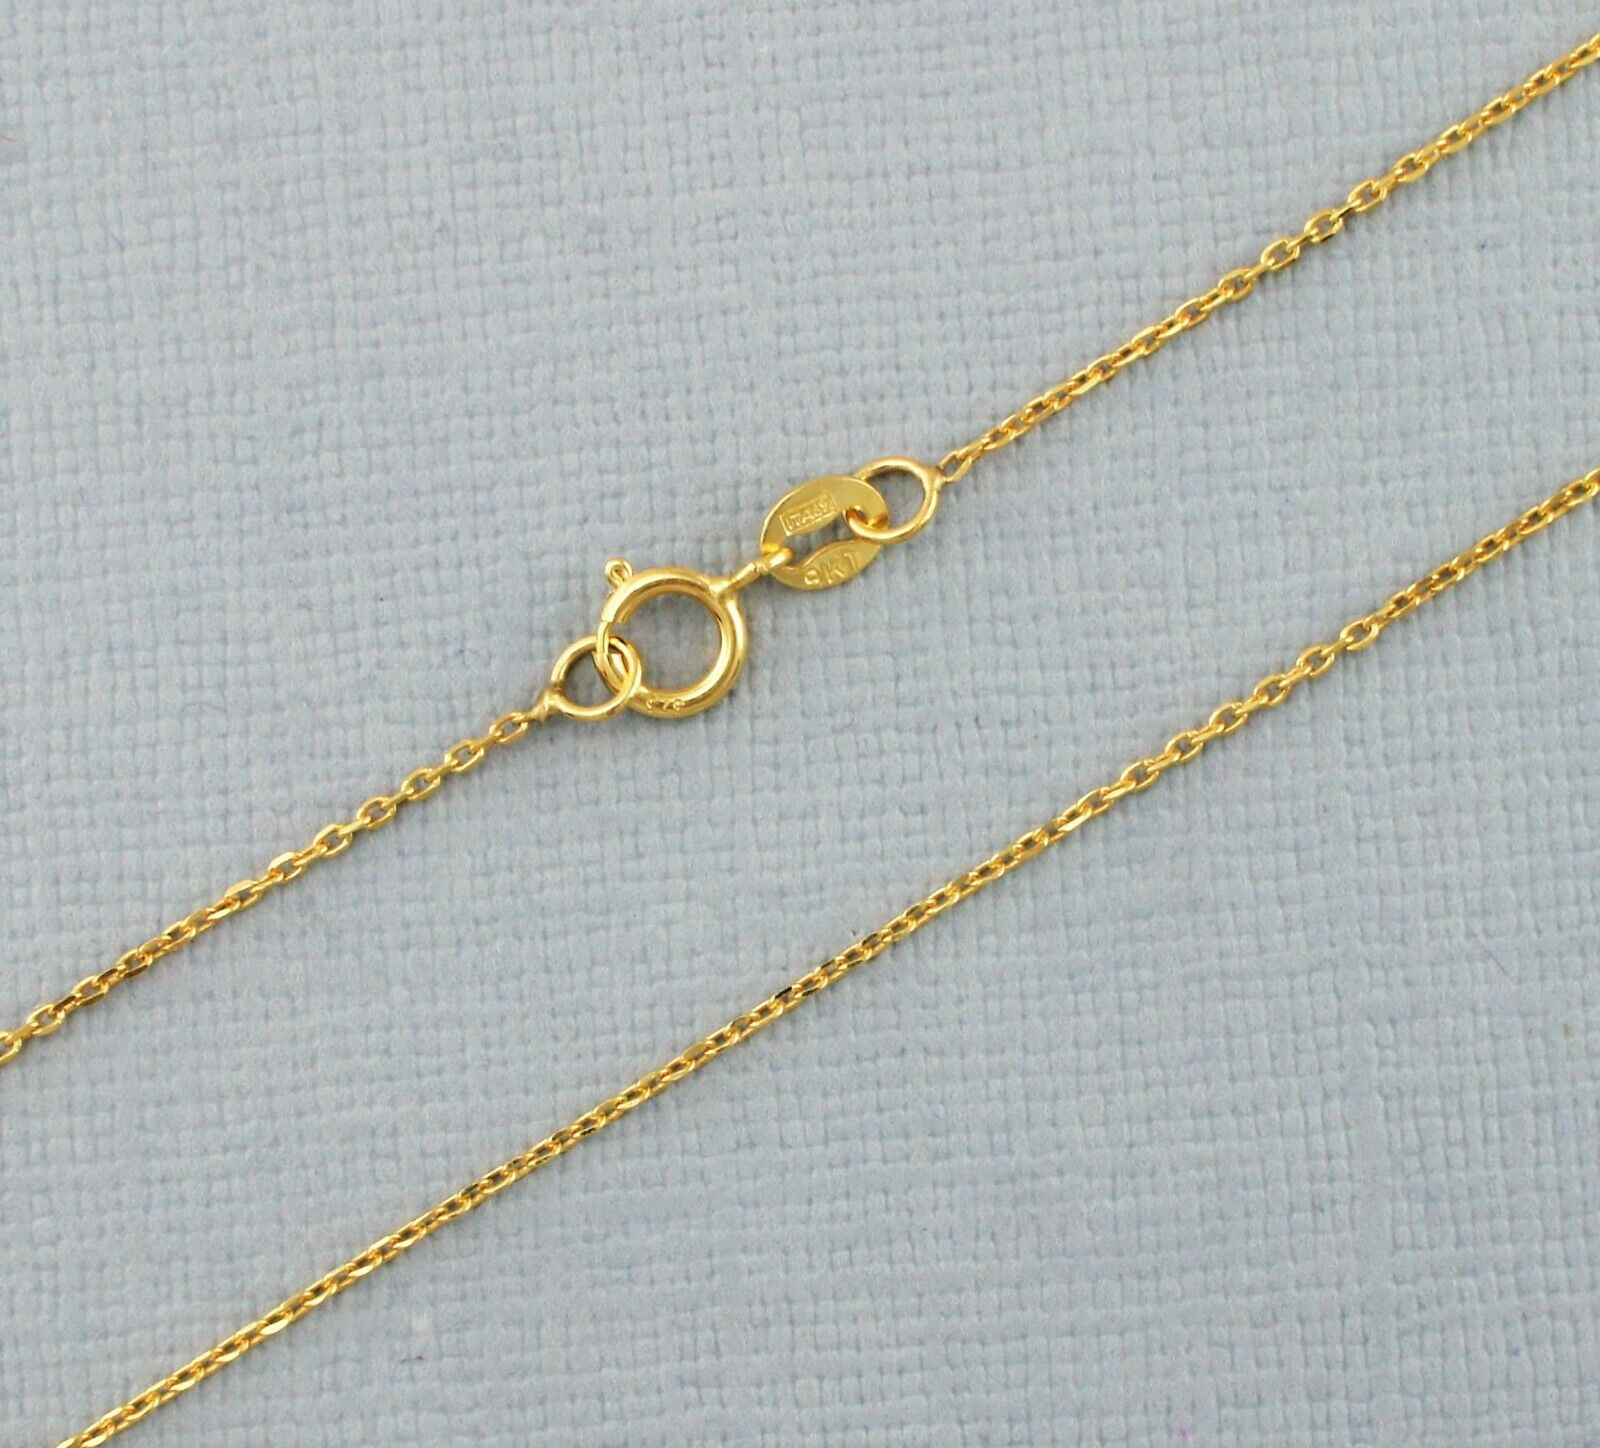 ef4c6898c 9ct Yellow gold Diamond Trace Chain 16 , 18 , 20 Inches New Cut ...